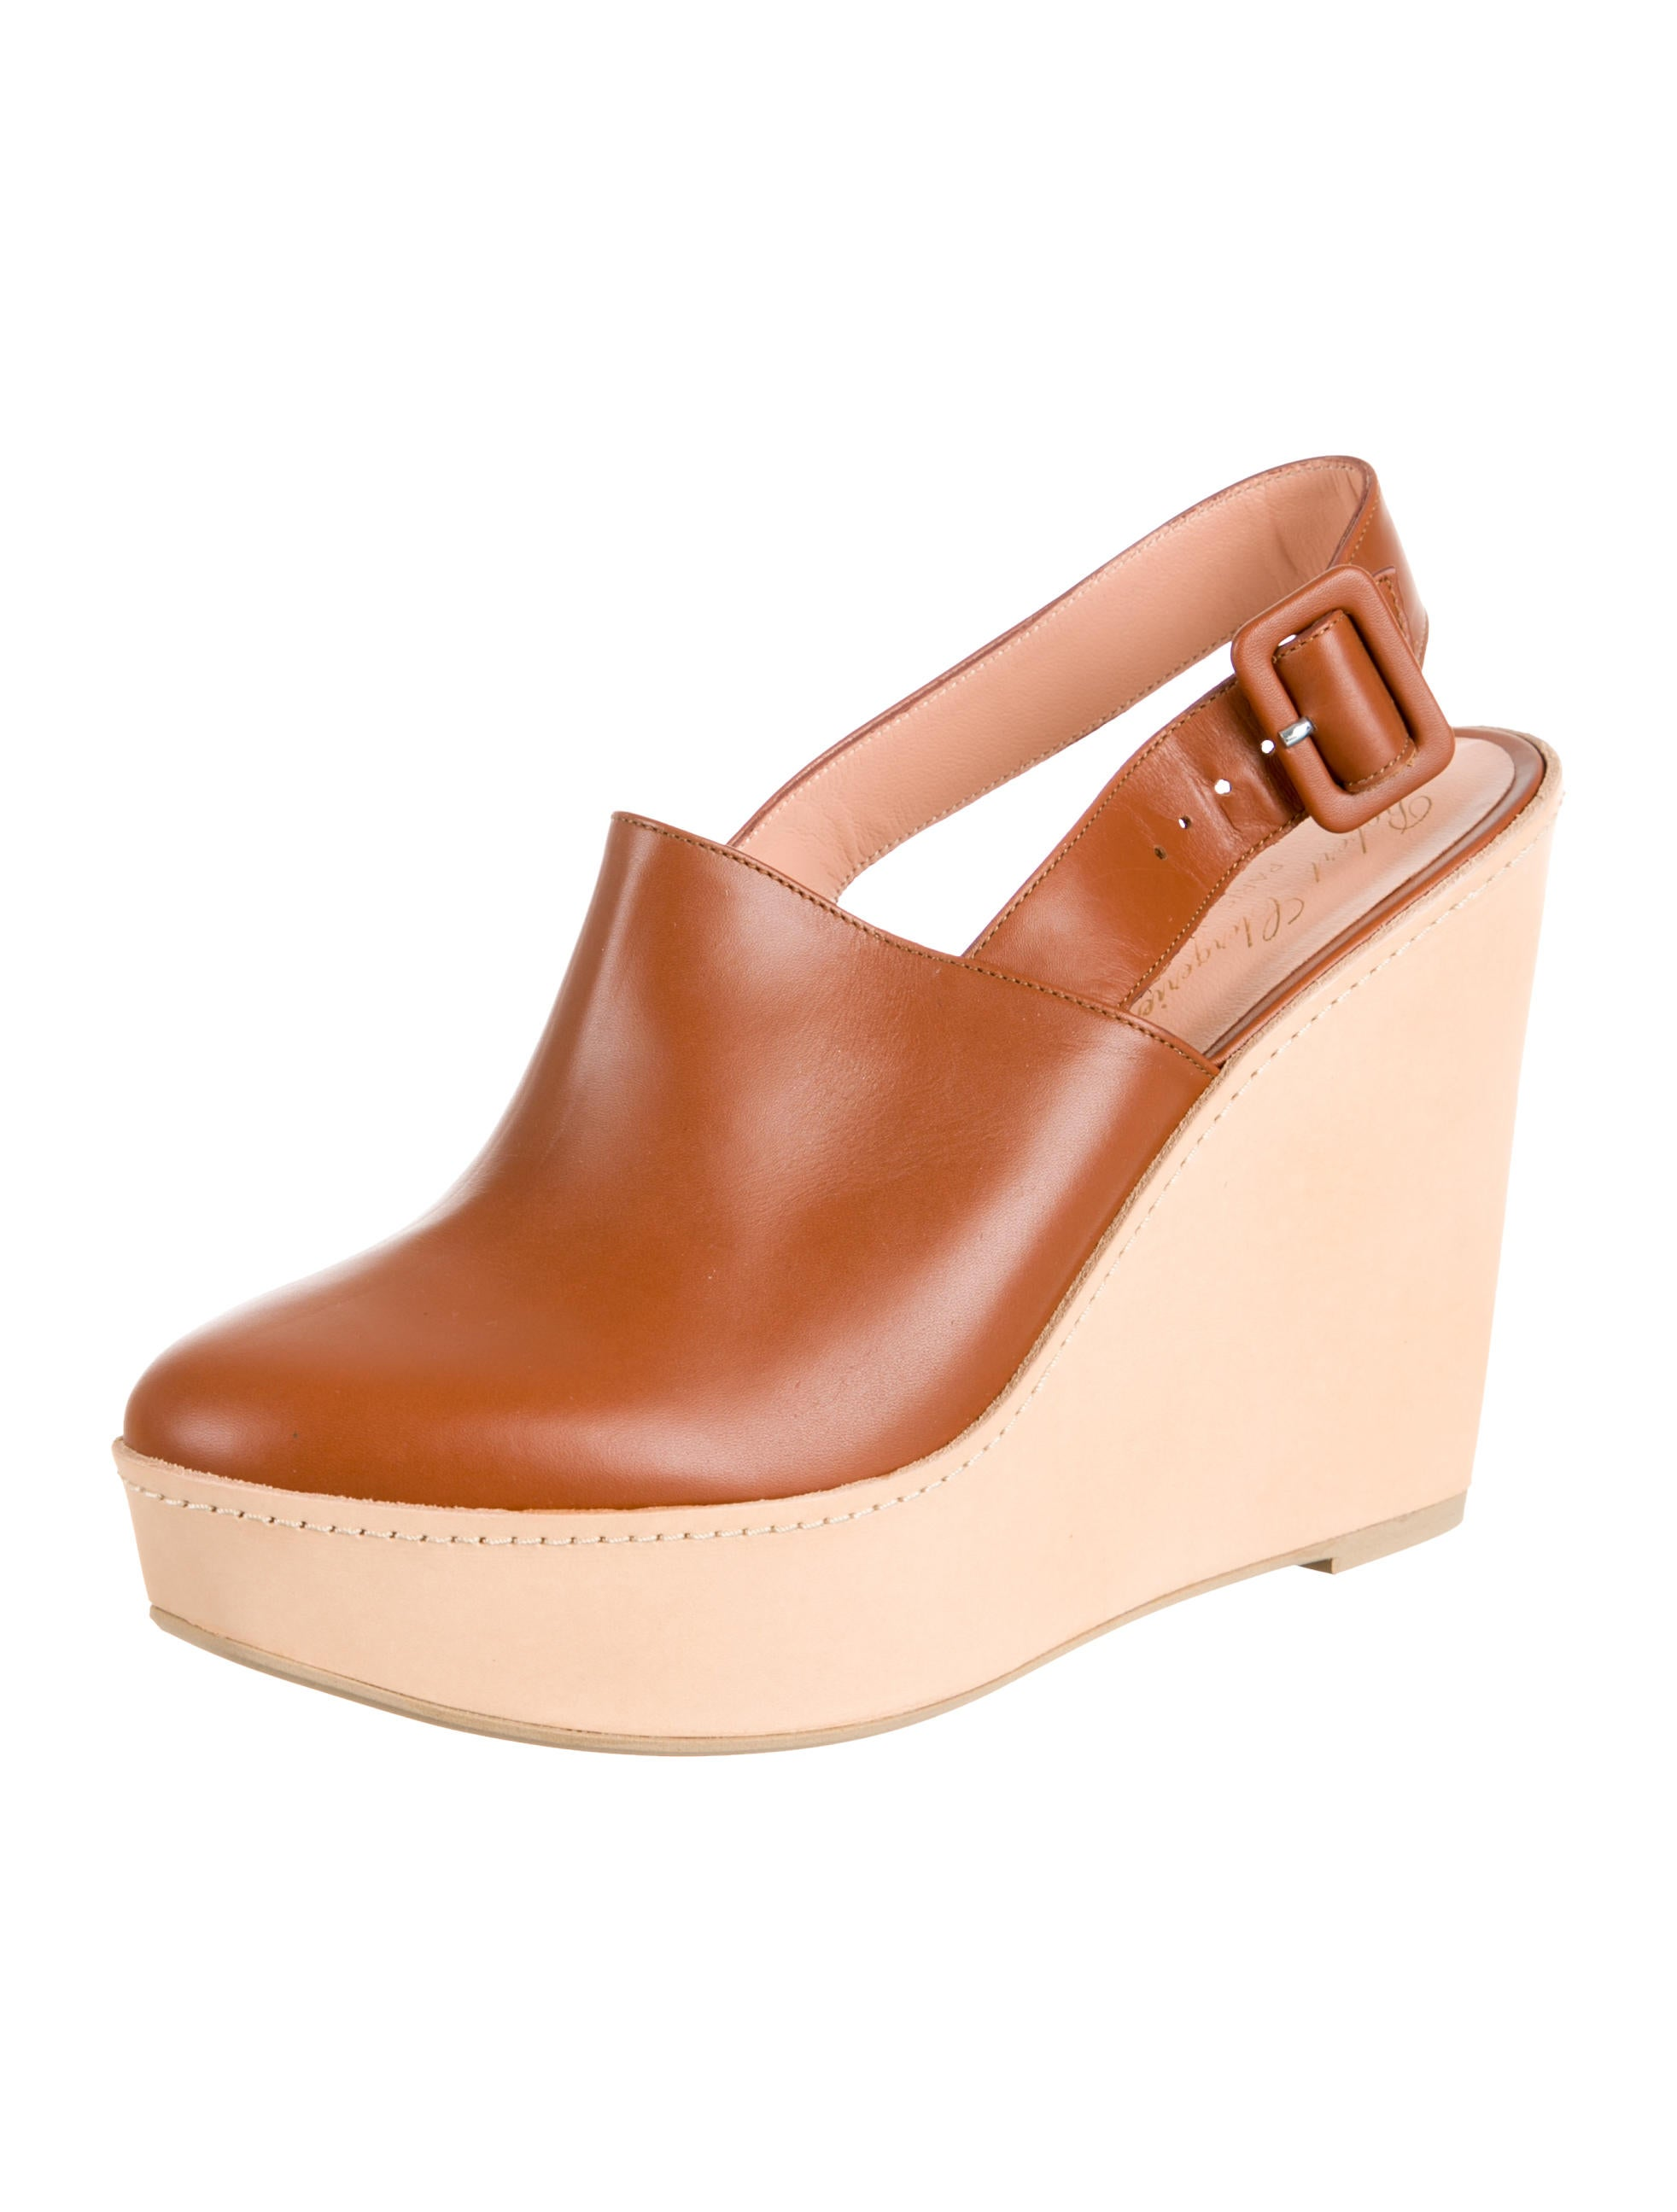 Robert Clergerie Leather Round-Toe Wedges w/ Tags outlet cheap price with mastercard discount Cheapest outlet explore free shipping for sale YtLQZ